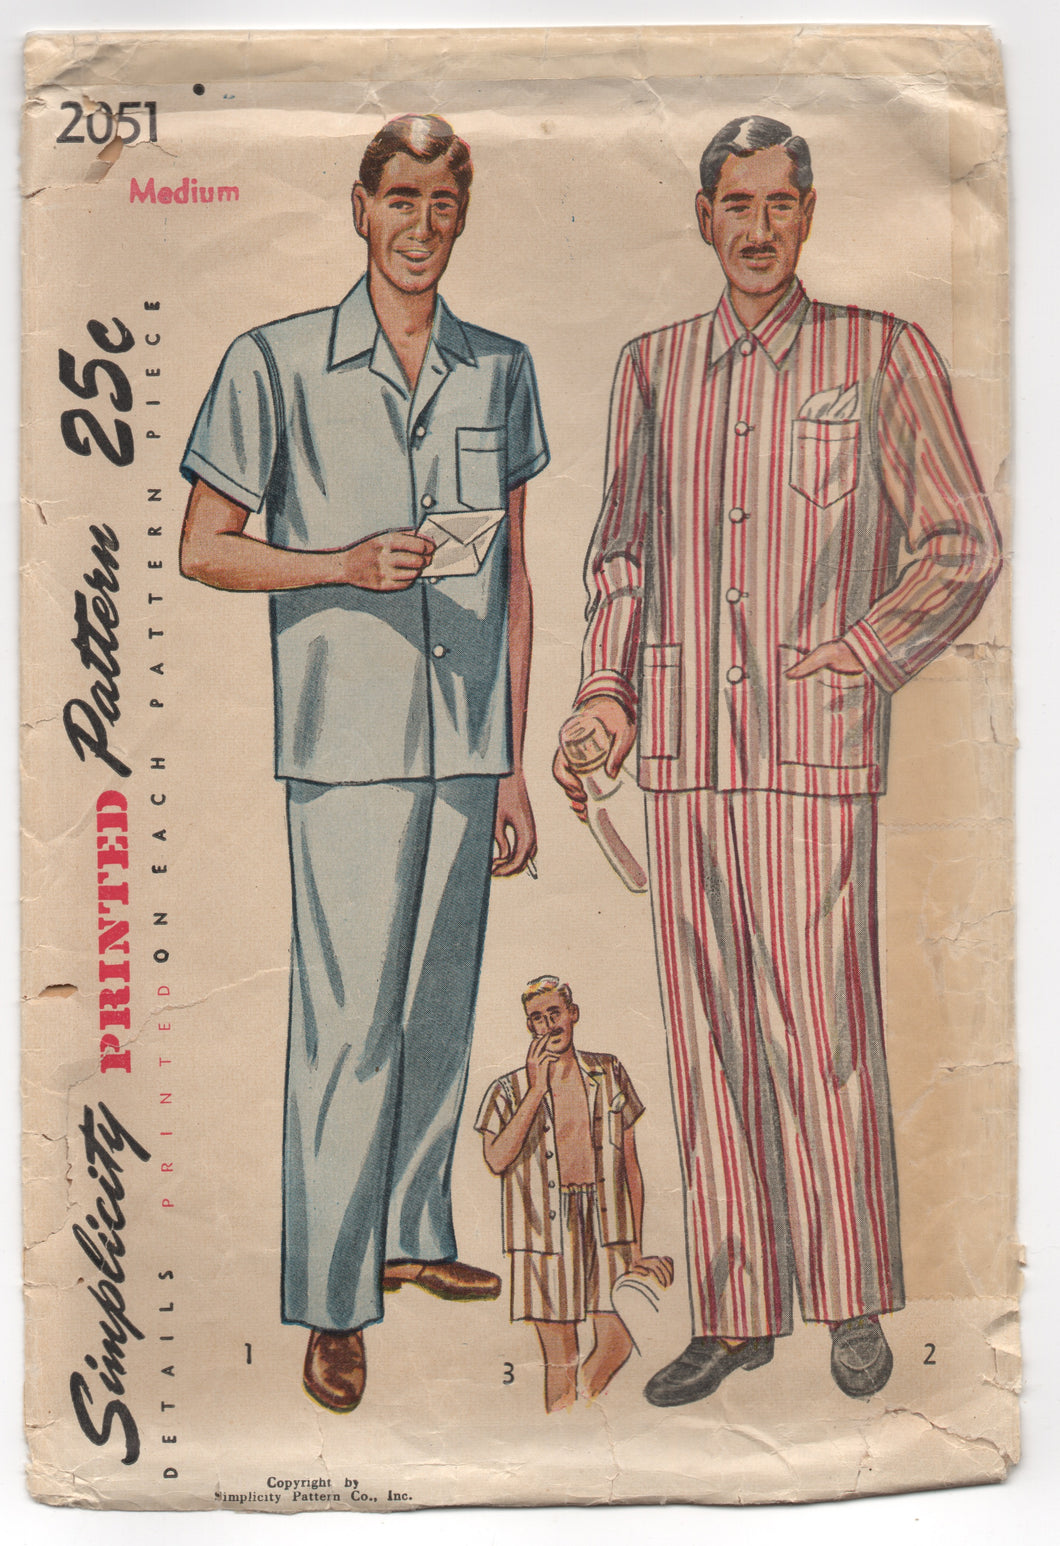 1950's Simplicity Men's Two Piece Pajamas with Shorts or Pants - Medium - No. 2051